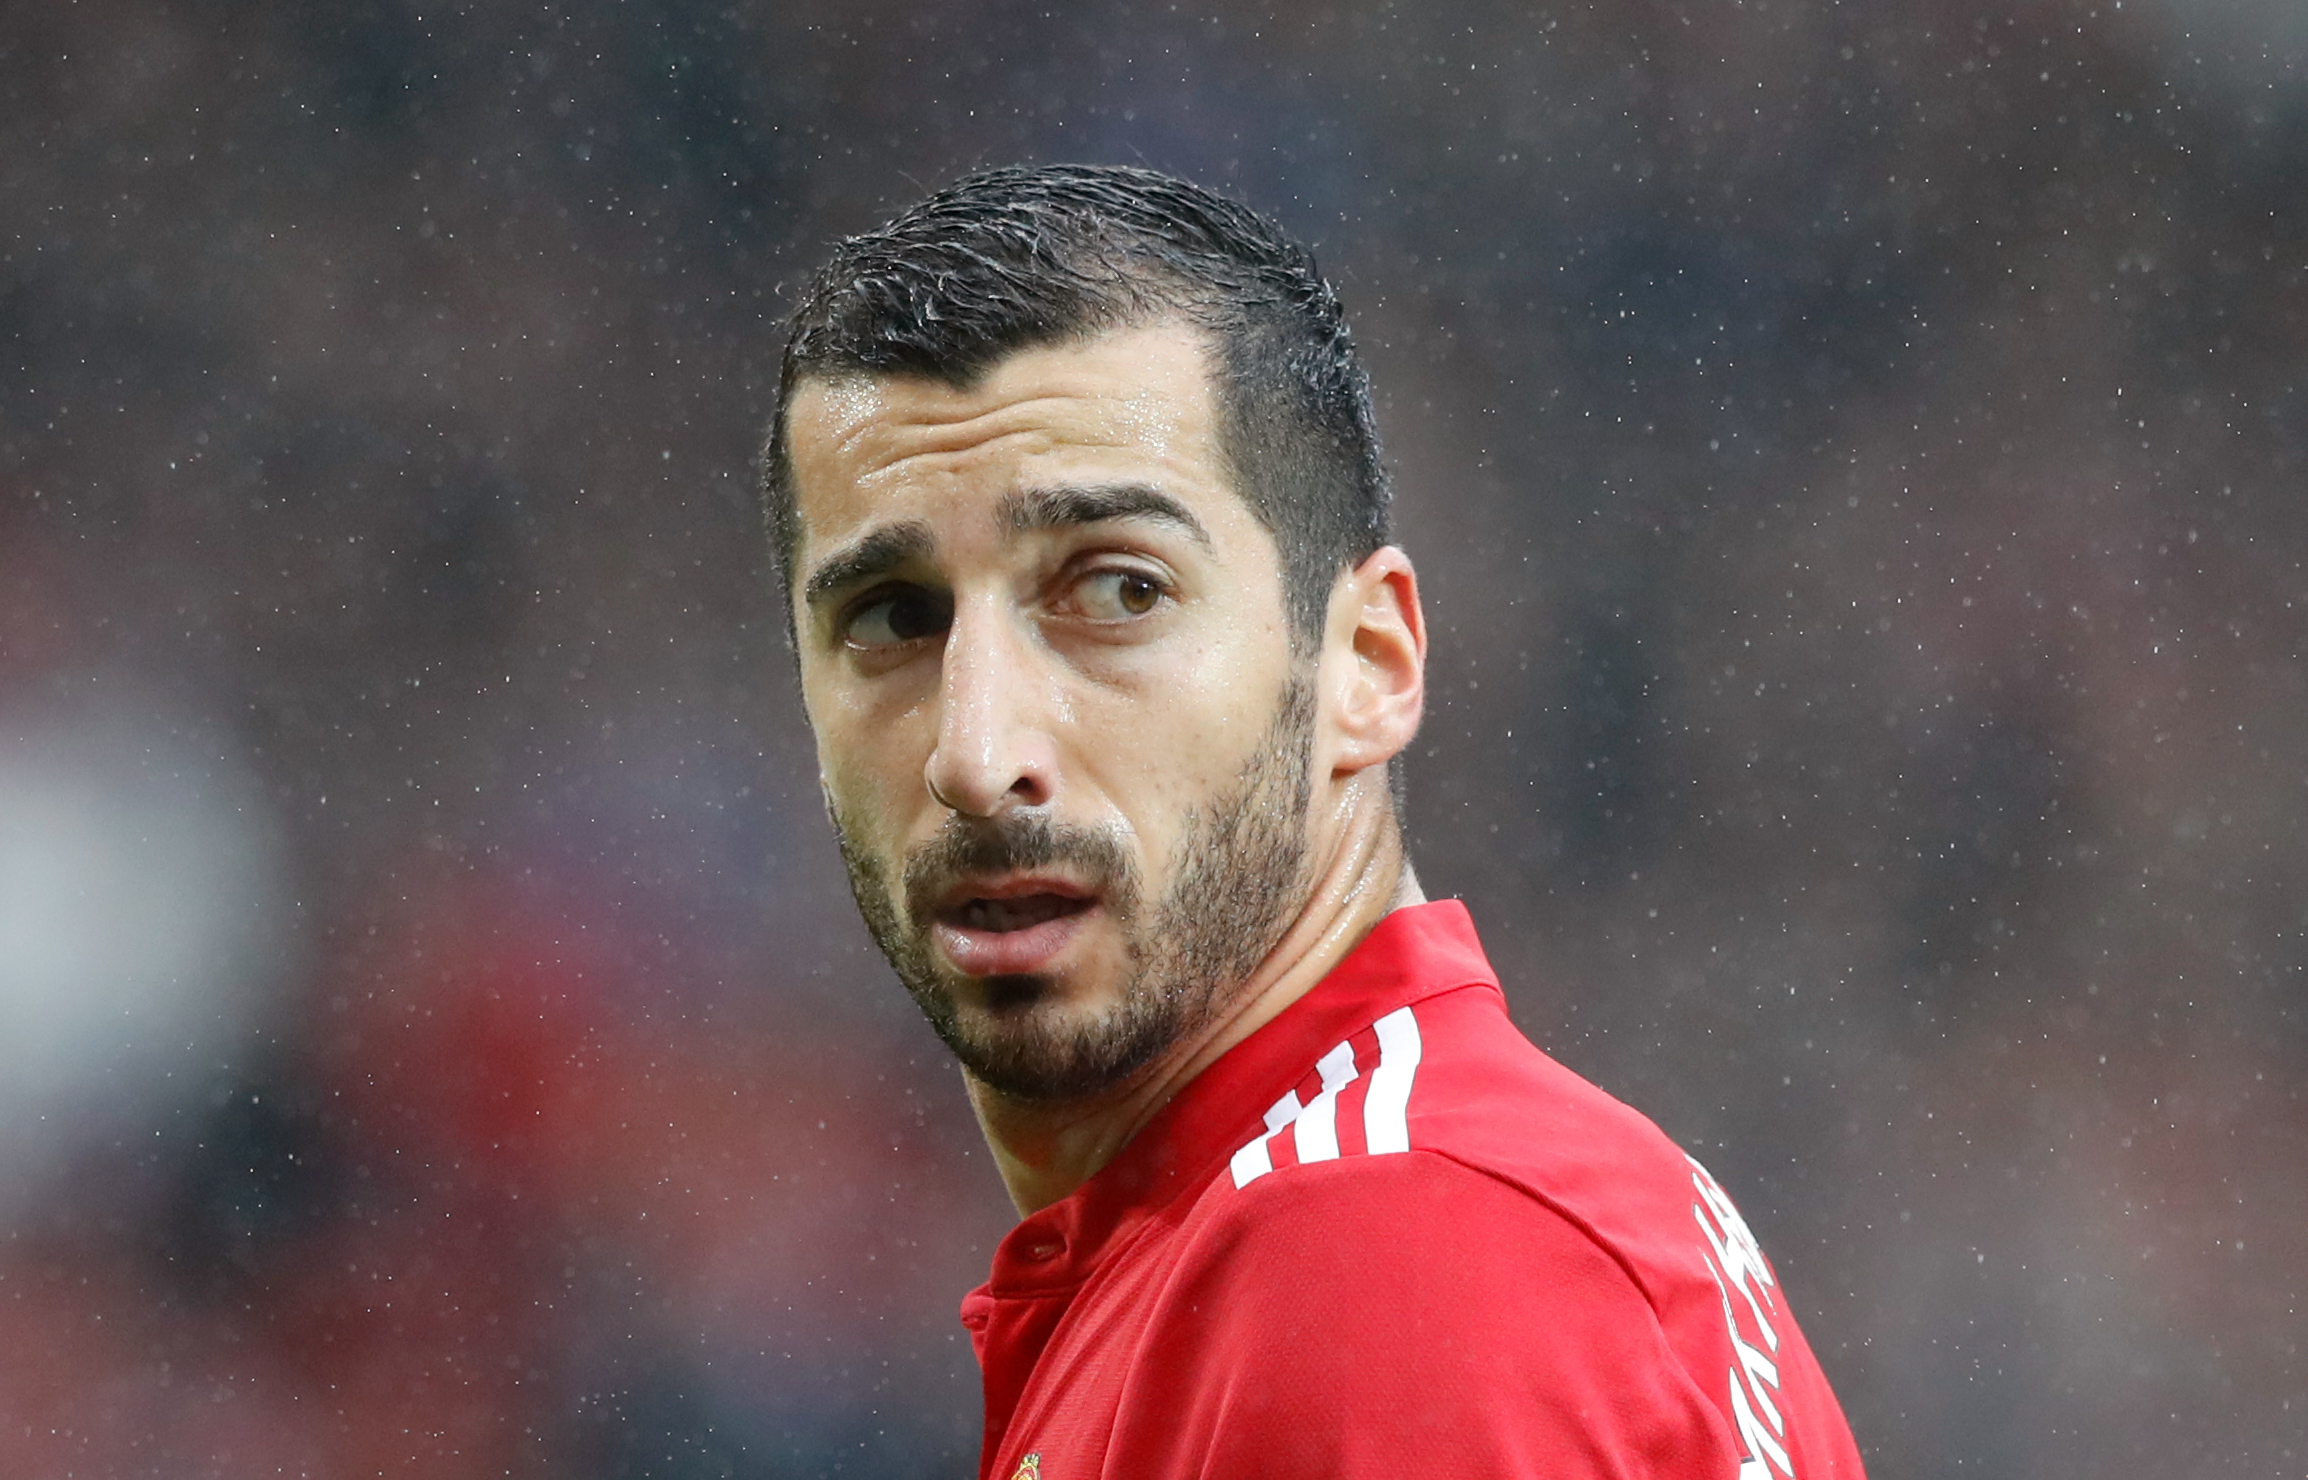 Mourinho right to hit out at Henrikh Mkhitaryan?